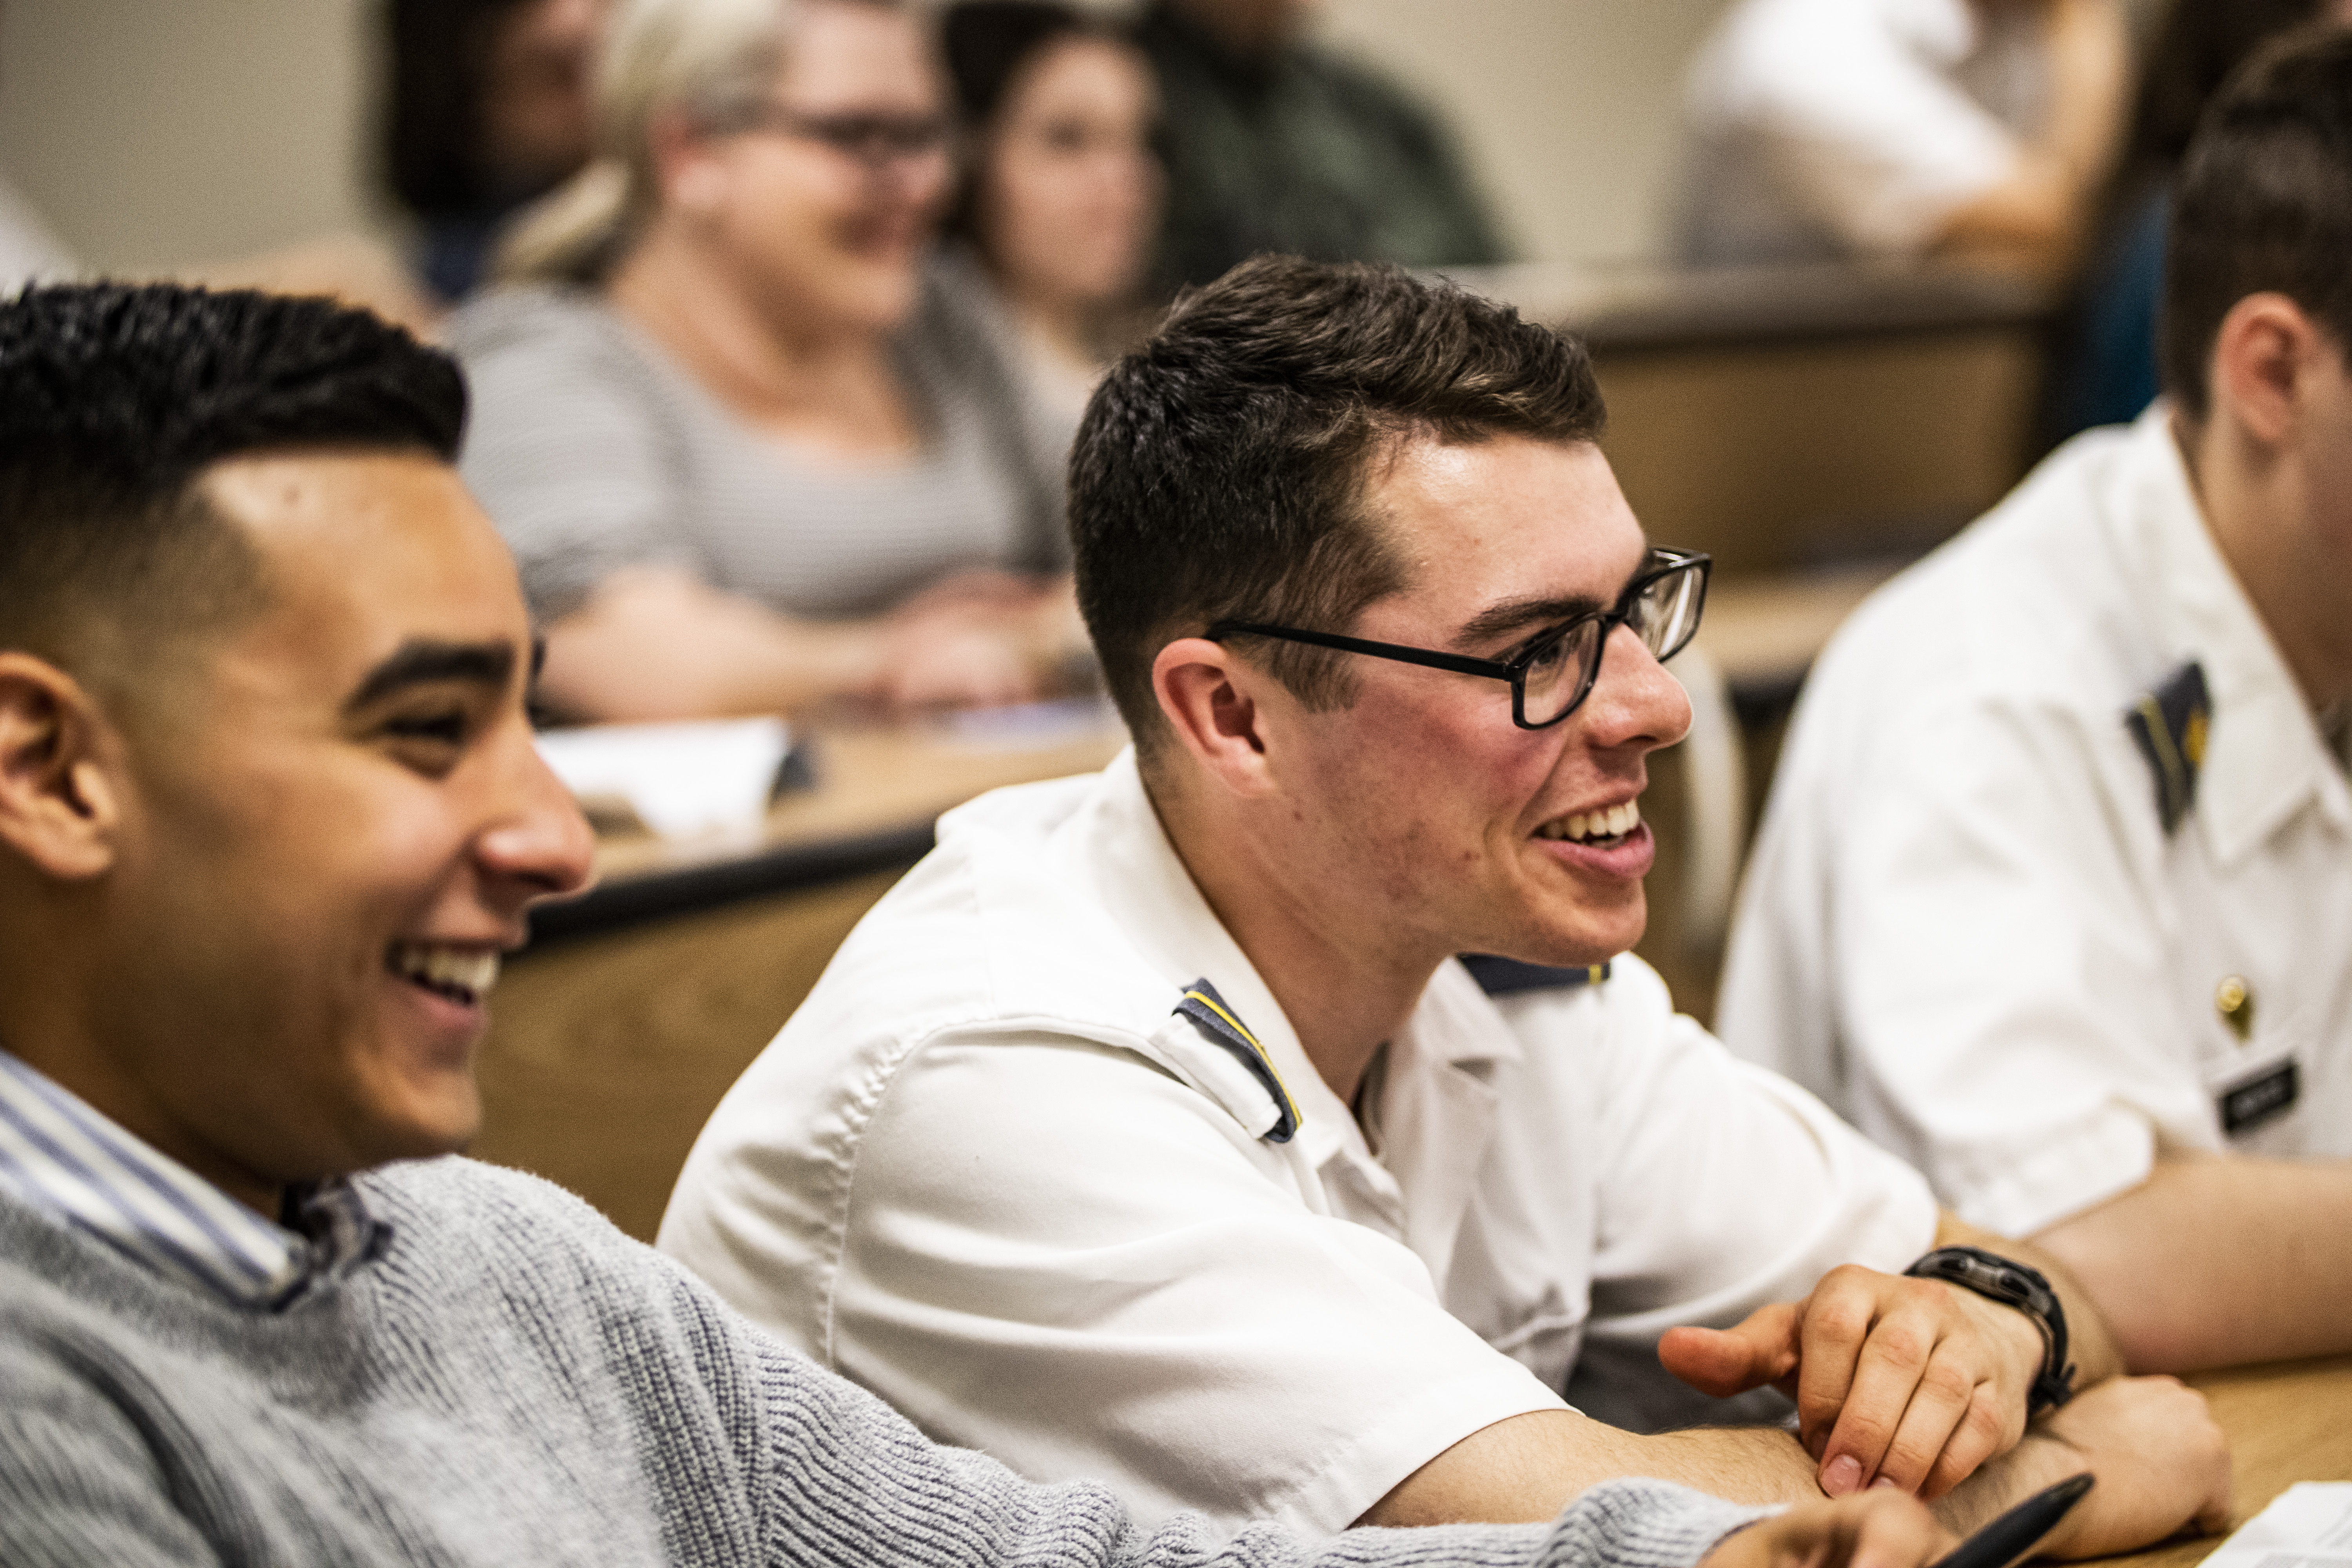 Civilian and military cadets enjoy fellowship at May 4, 2019, YSA conference at the United States Military Academy in West Point, New York.